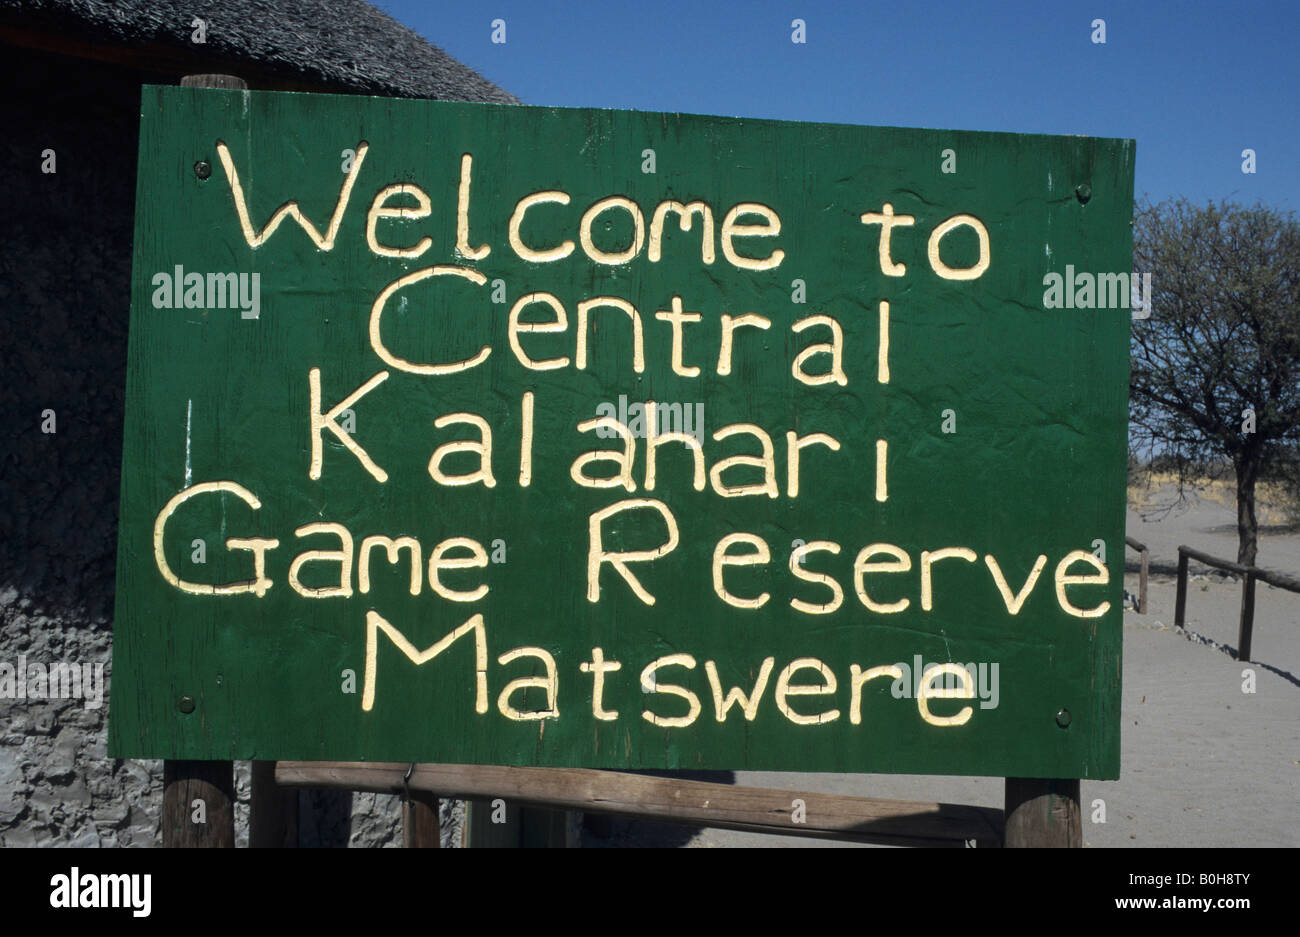 Sign: 'Welcome to Central Kalahari Game Reserve', Central Kalahari Game Reserve, Botswana, Africa - Stock Image